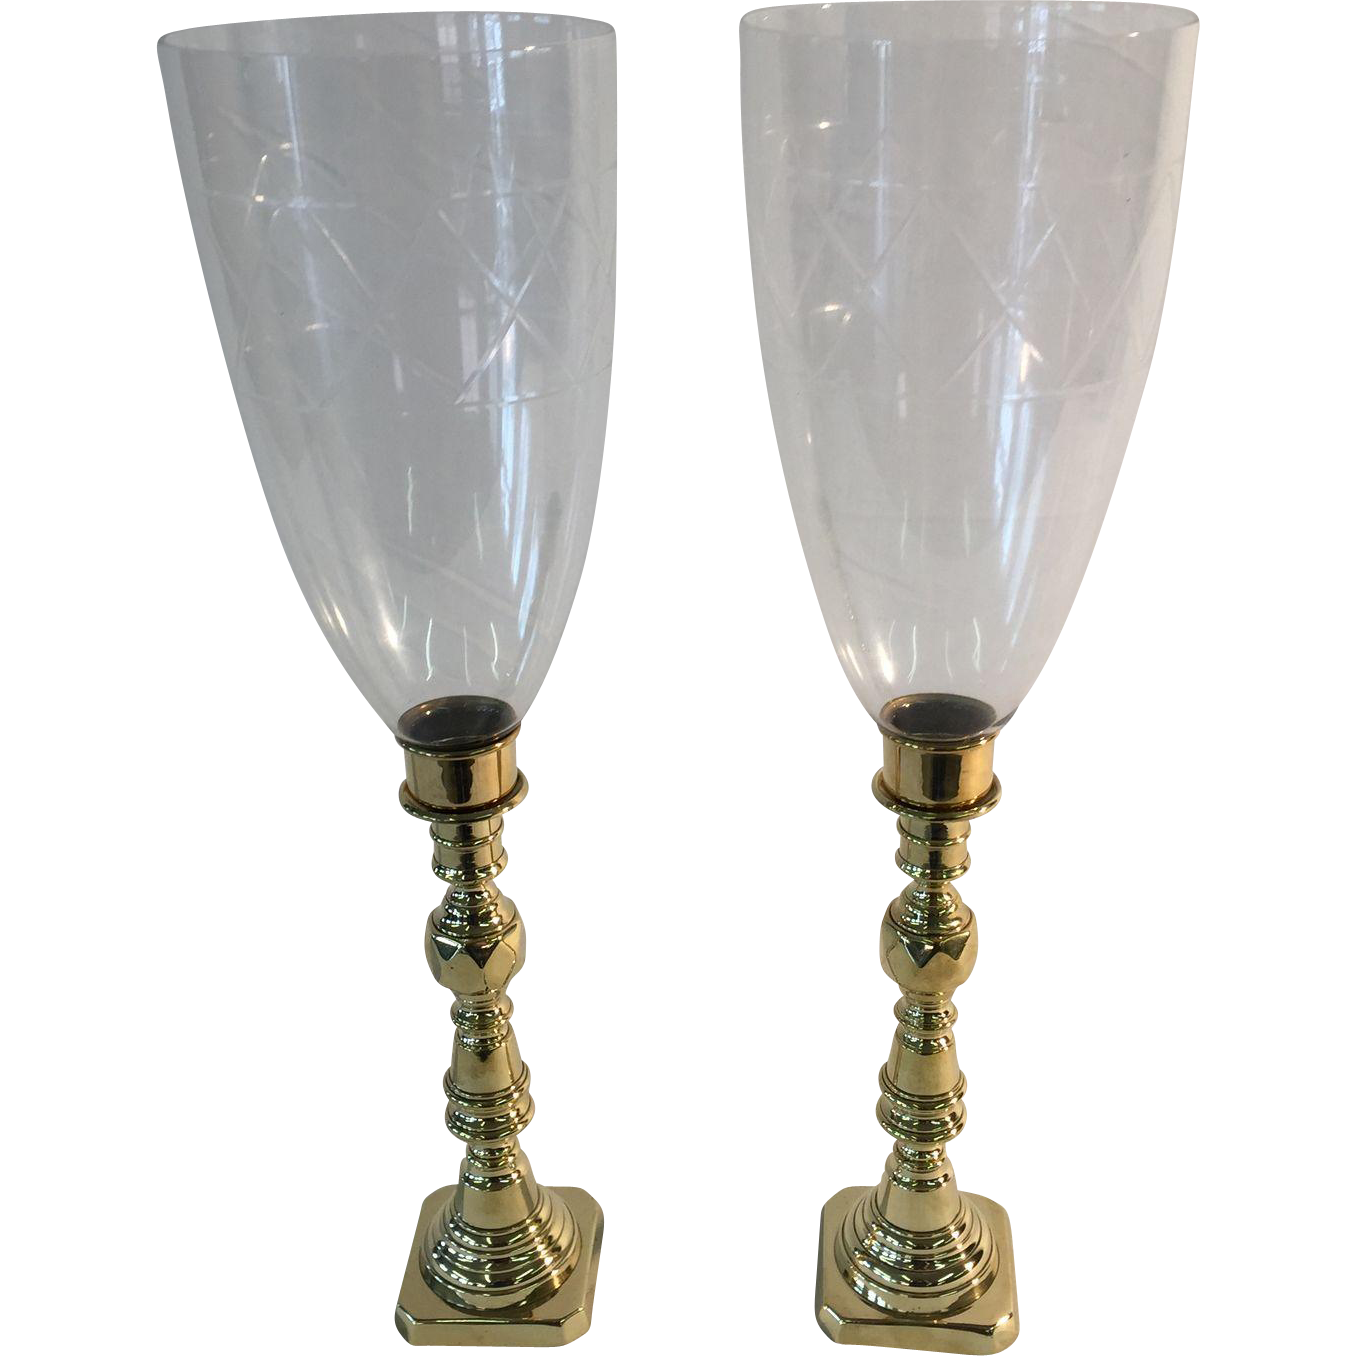 Late 19th century English candle sticks with hurricane shades